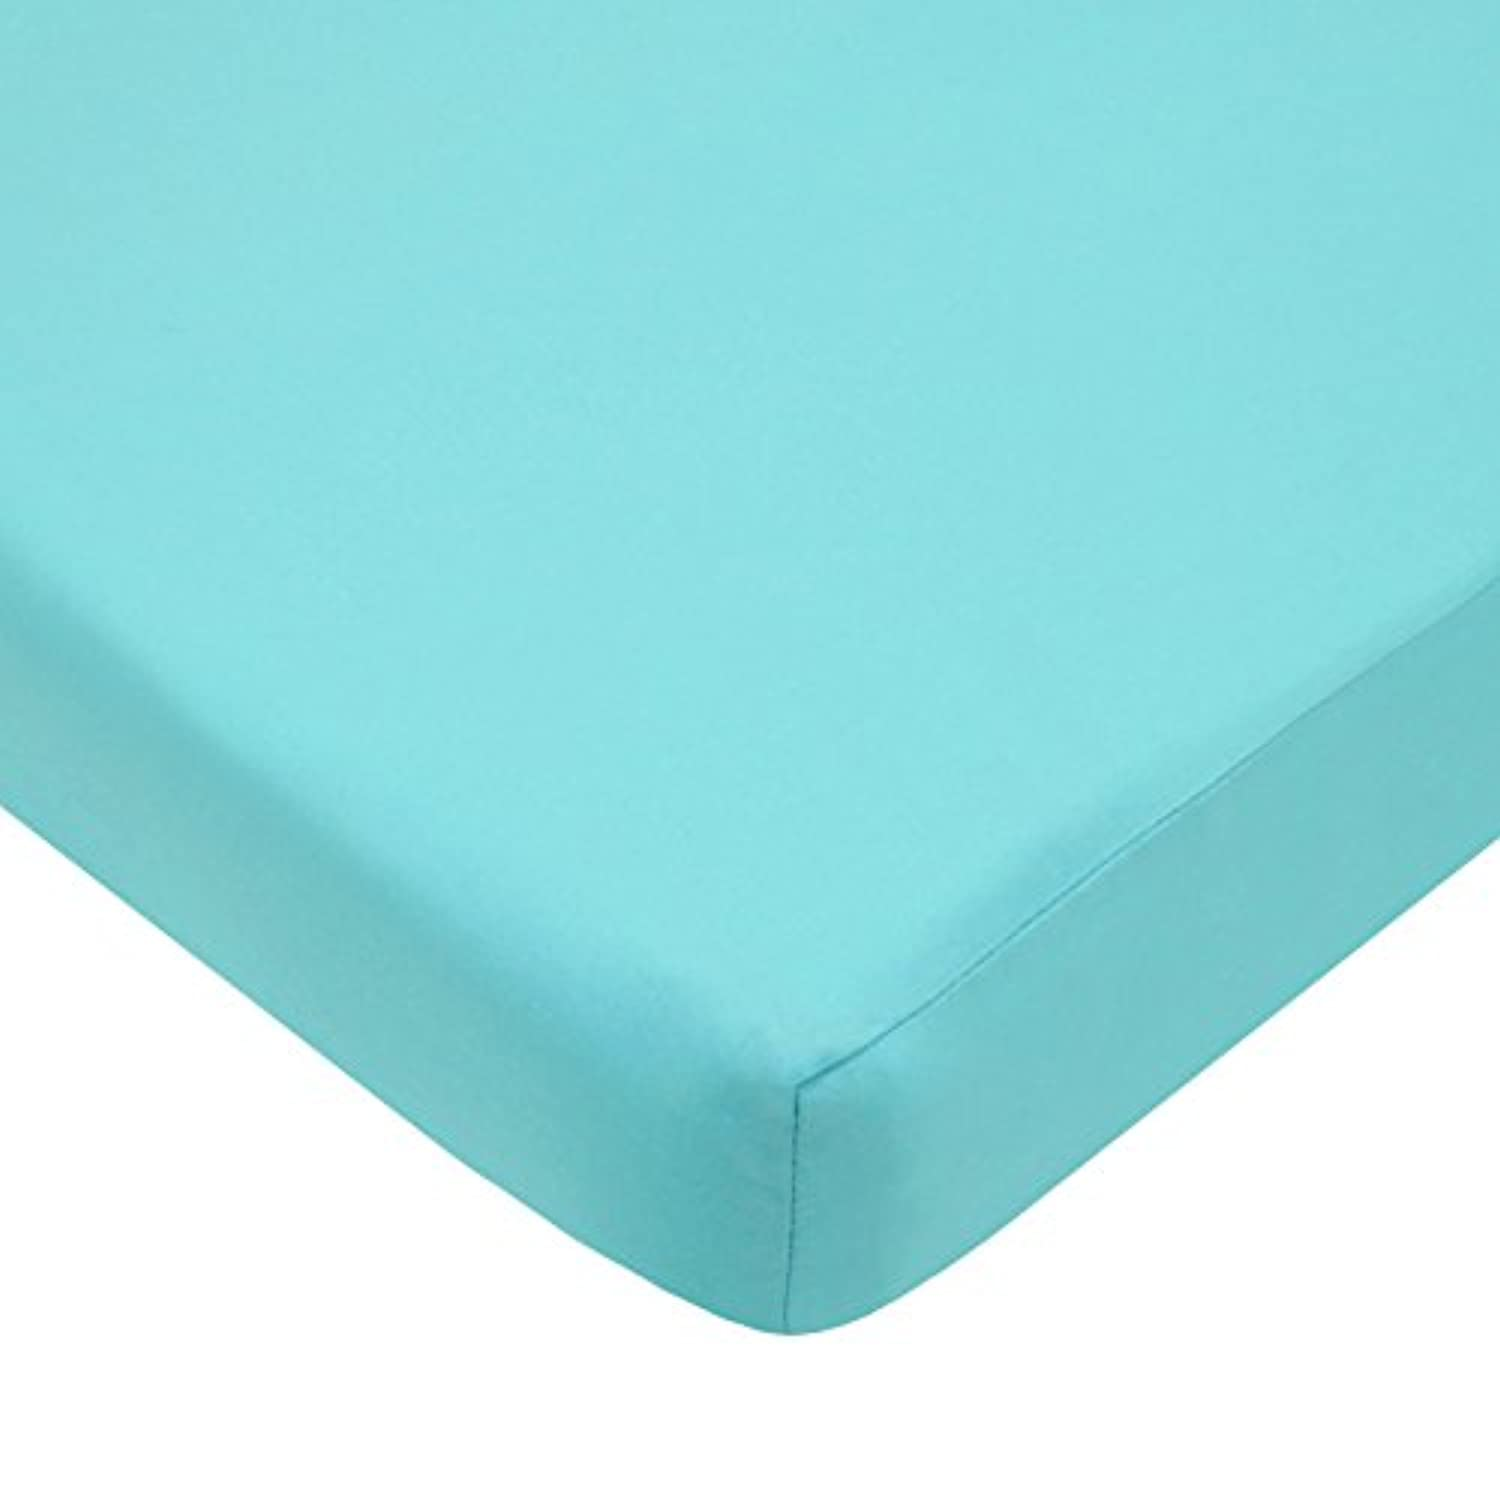 American Baby Company 100% Cotton Percale Fitted Portable/Mini Crib Sheet, Aqua by American Baby Company